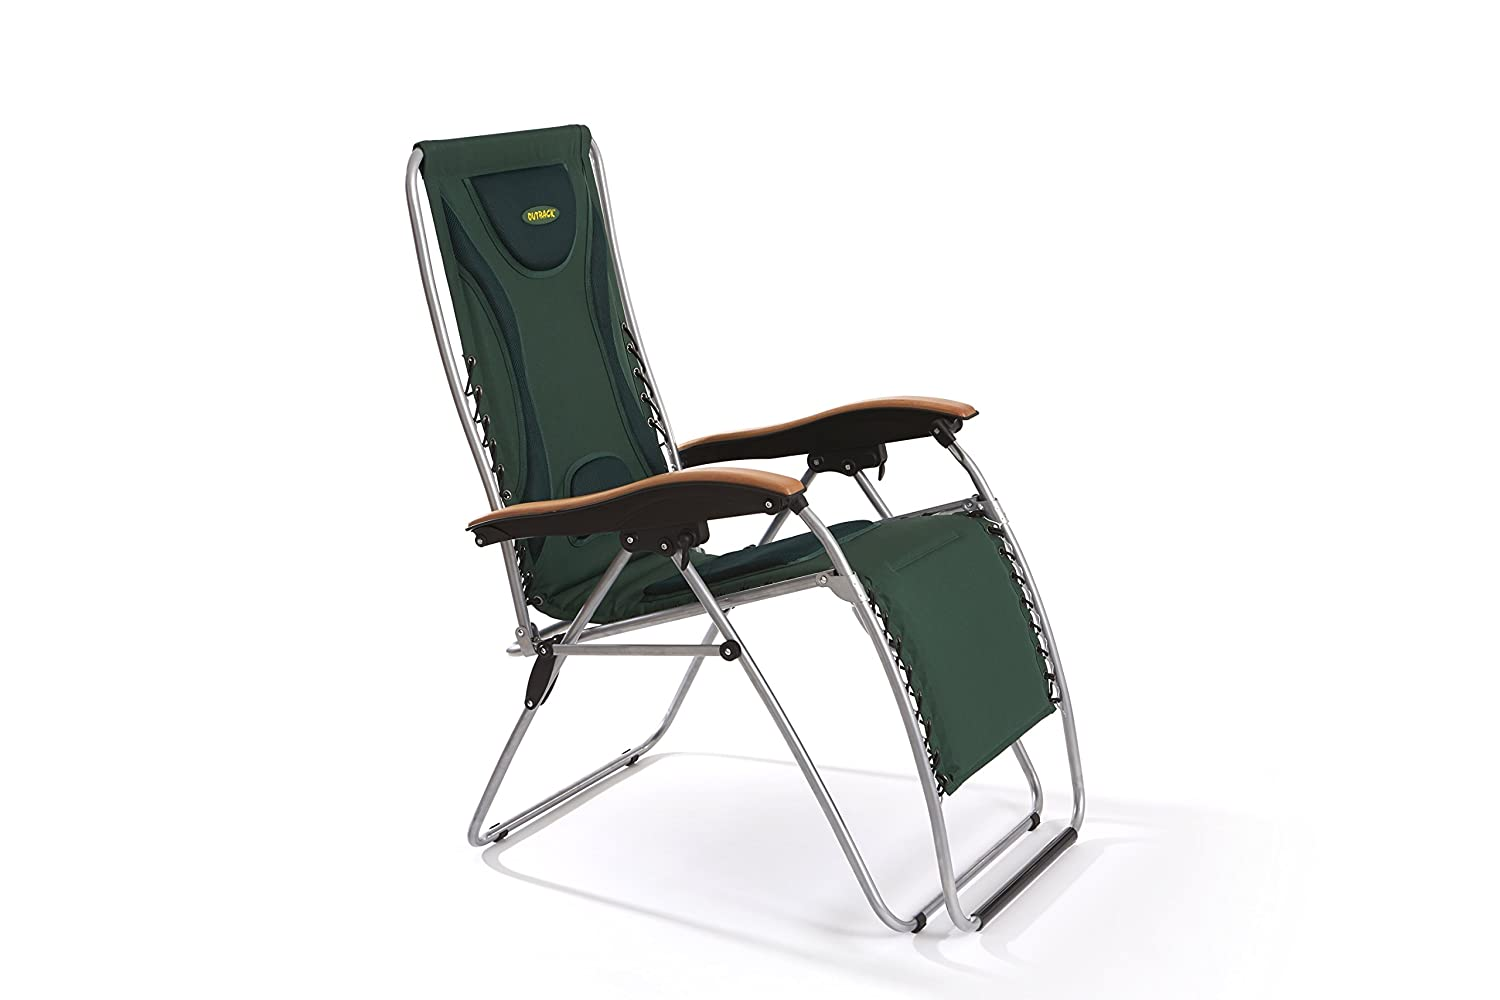 Outback padded relaxer extra reclining garden camping chair amazon co uk sports outdoors